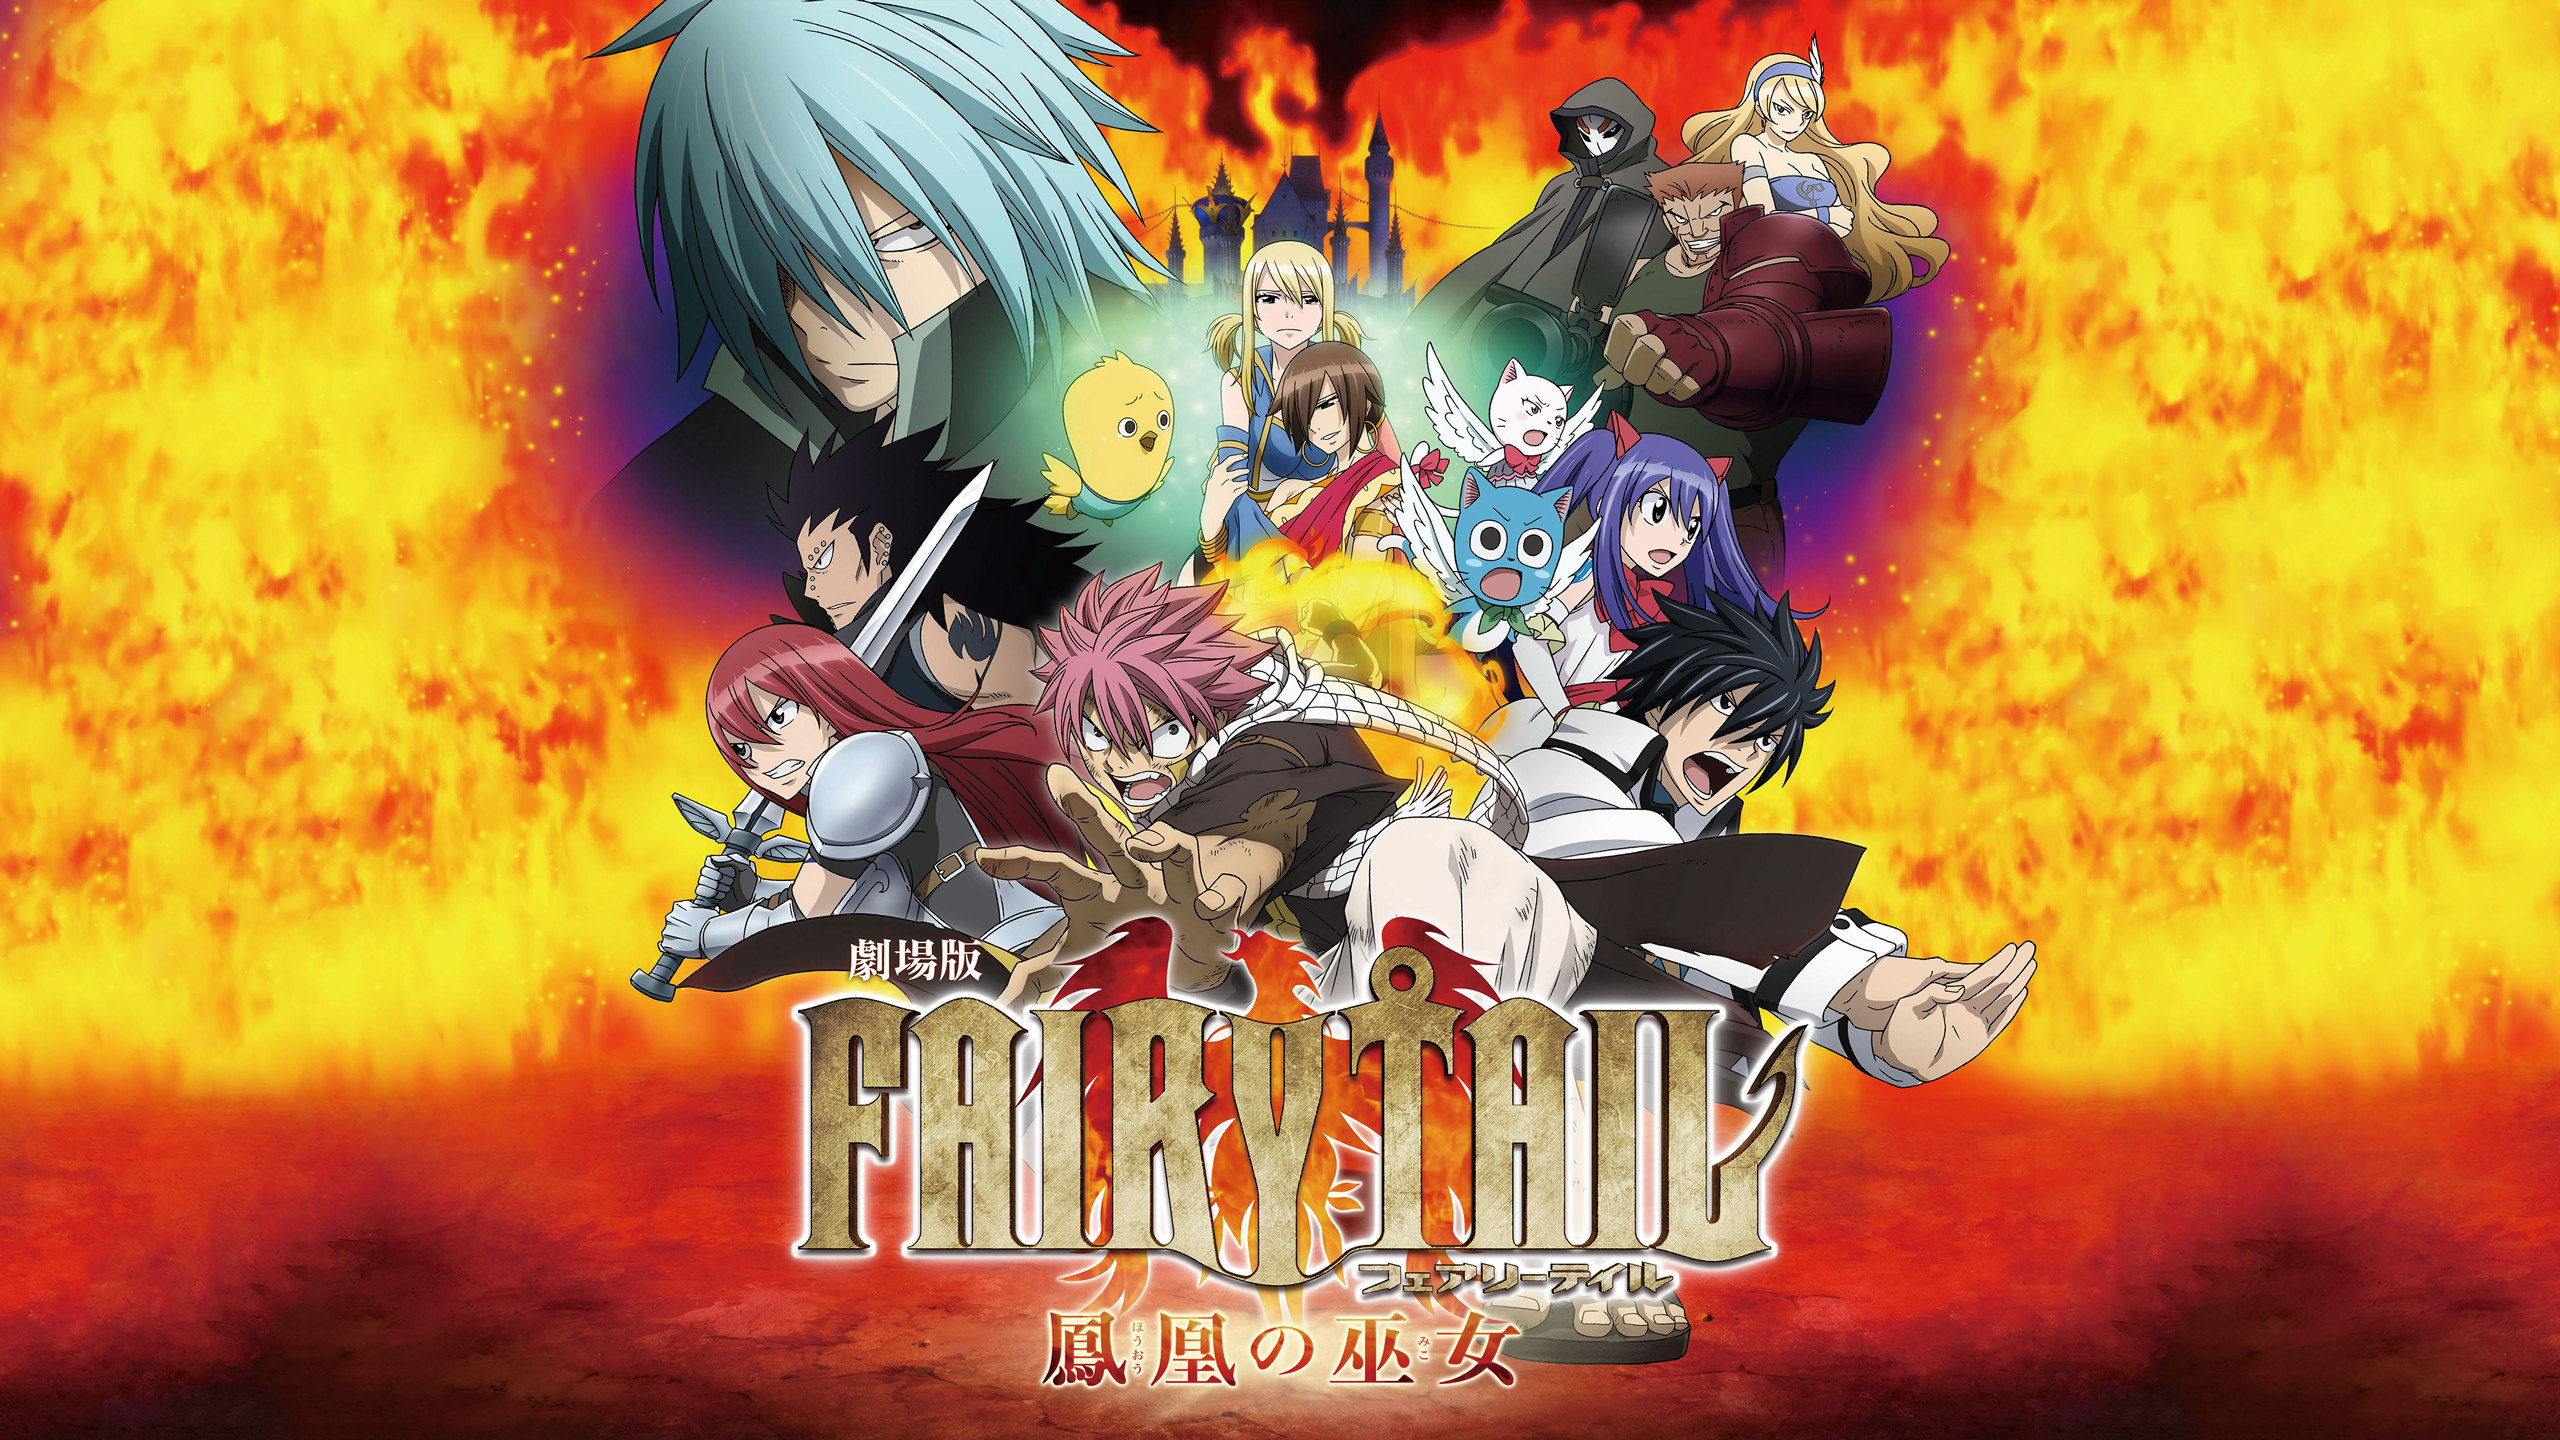 Fairy Tail Wallpapers 2560x1440 Desktop Backgrounds